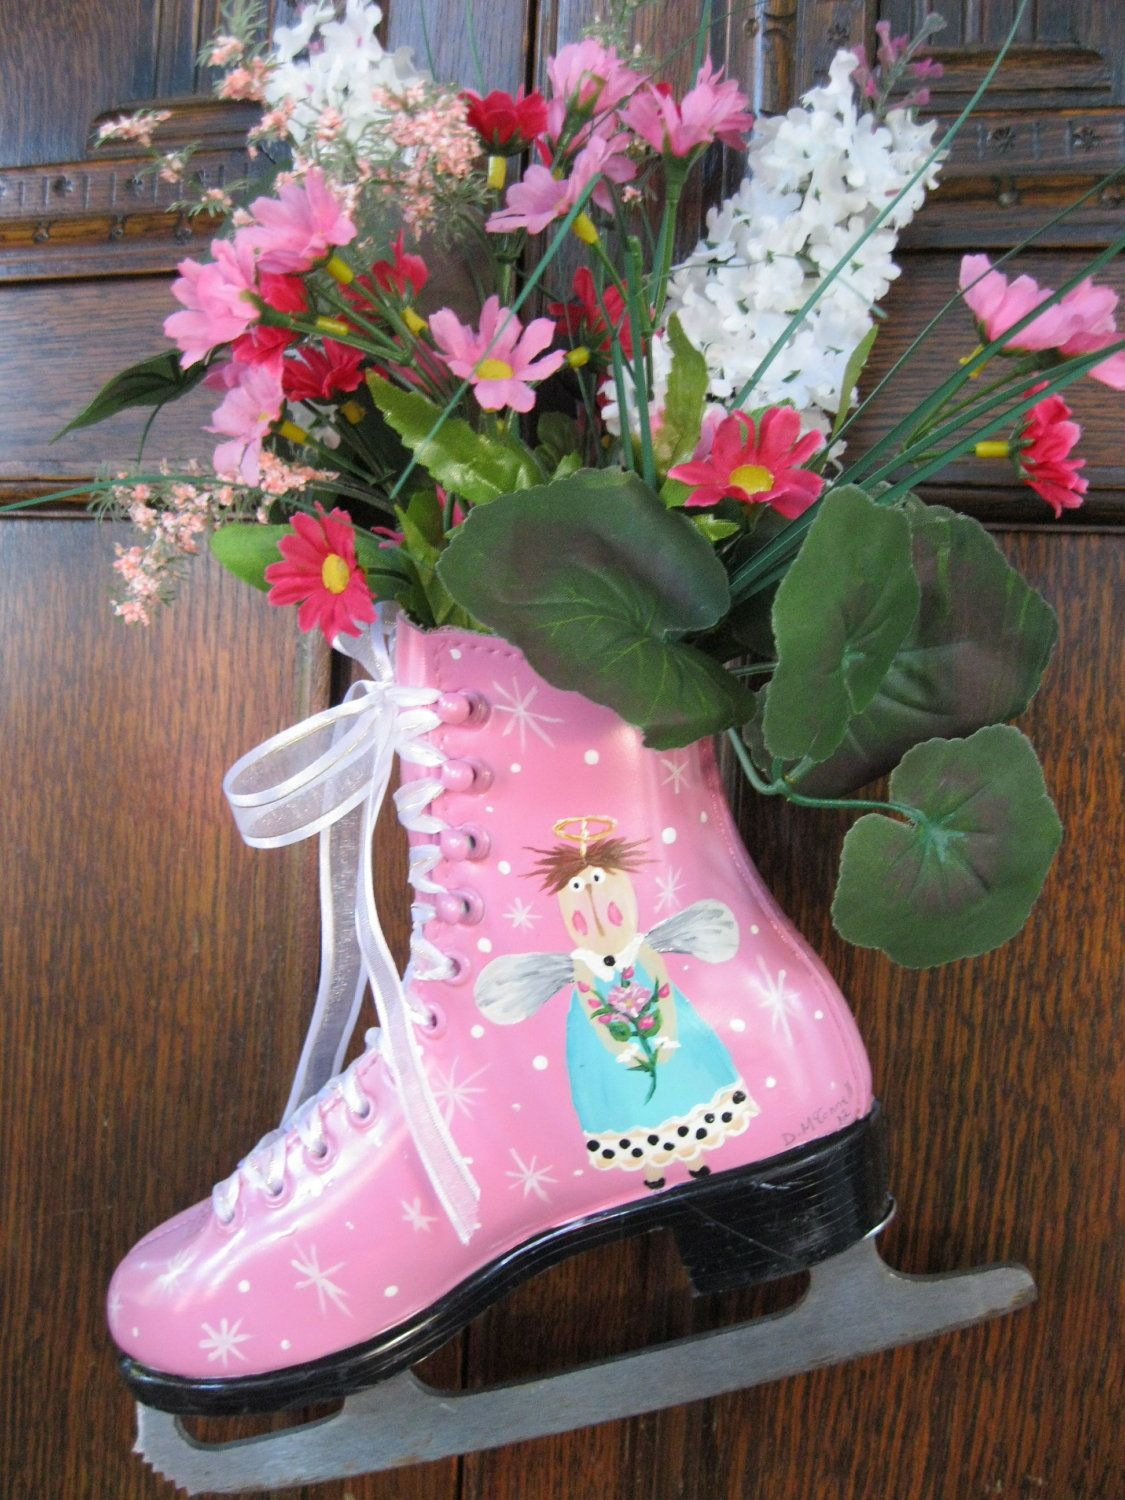 Handpainted Shabby Chic Christmas figure skate Flower Arrangement with Angel in Pink and Aqua. $35.00, via Etsy.